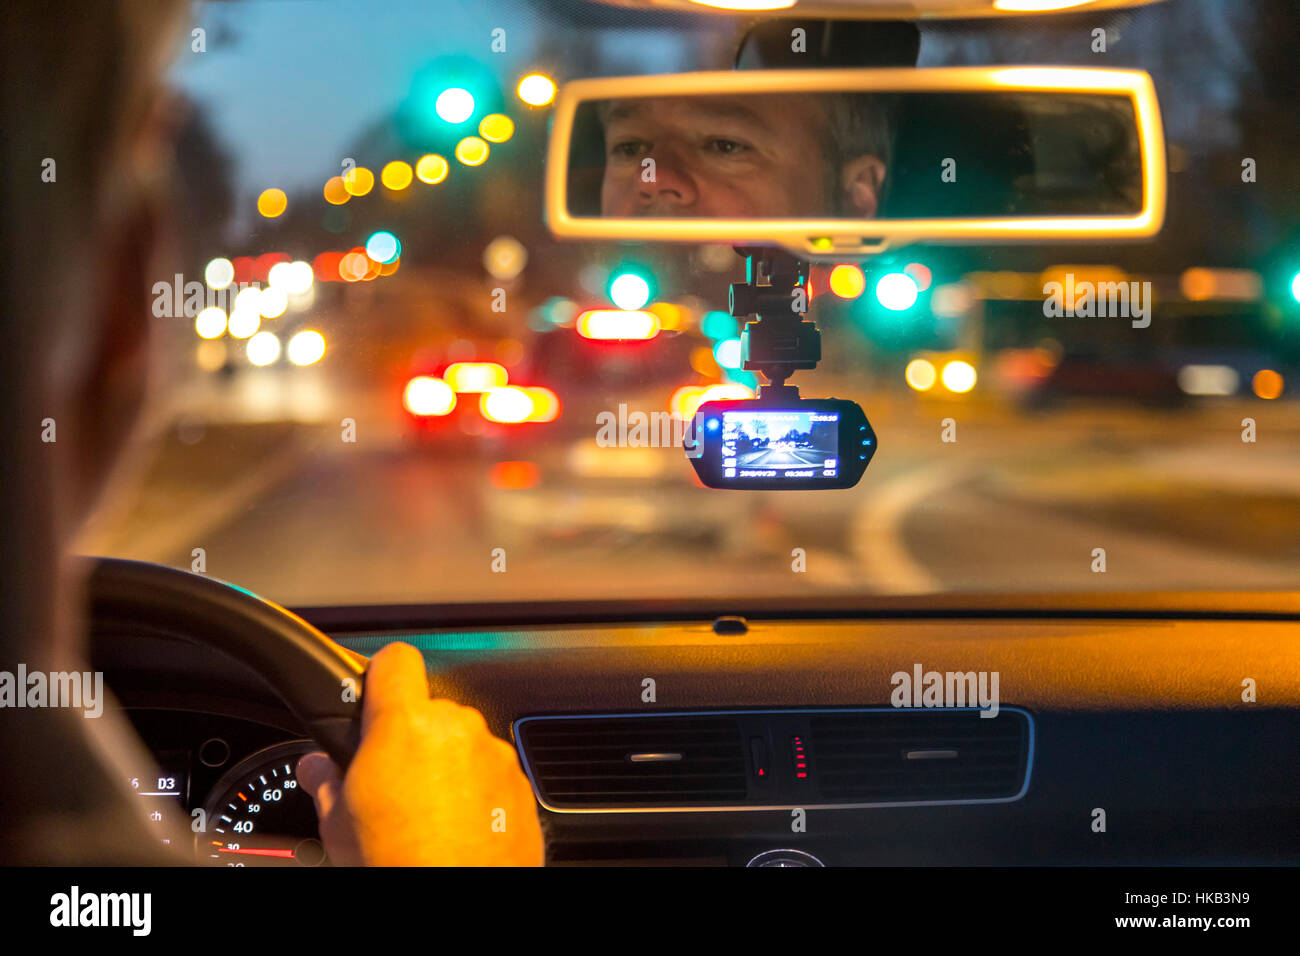 Dashcam in a passenger car, video camera on the windshield, permanently records the traffic in front of the vehicle, - Stock Image